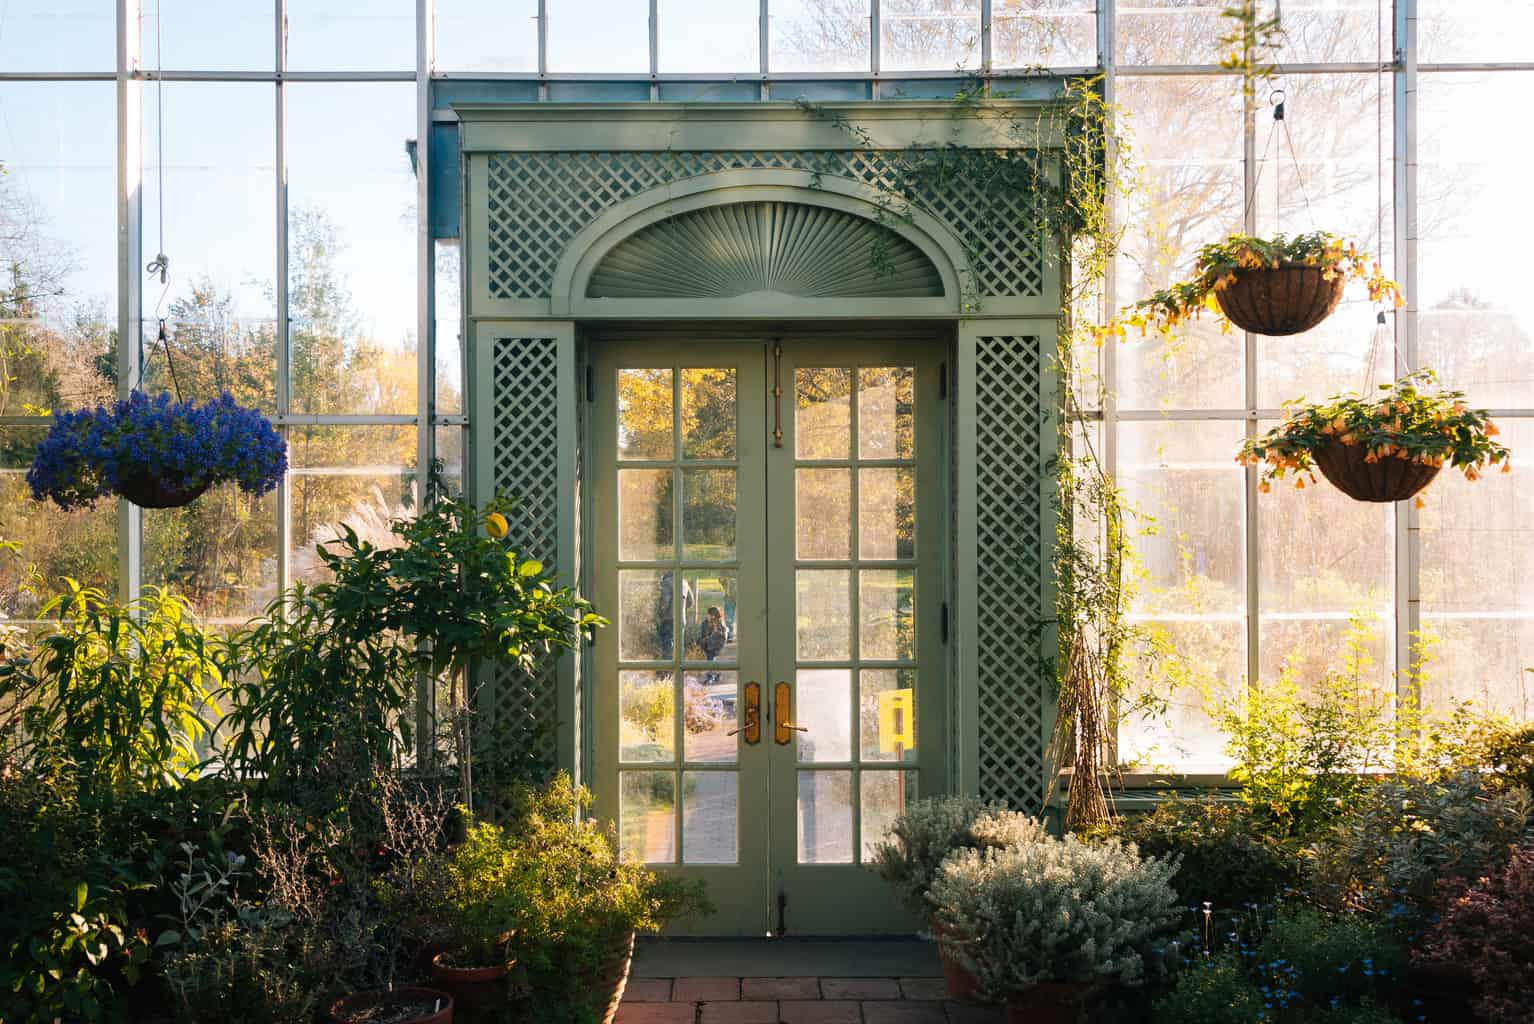 The green, greenhouse door at Wave Hill Public Gardens in The Bronx.